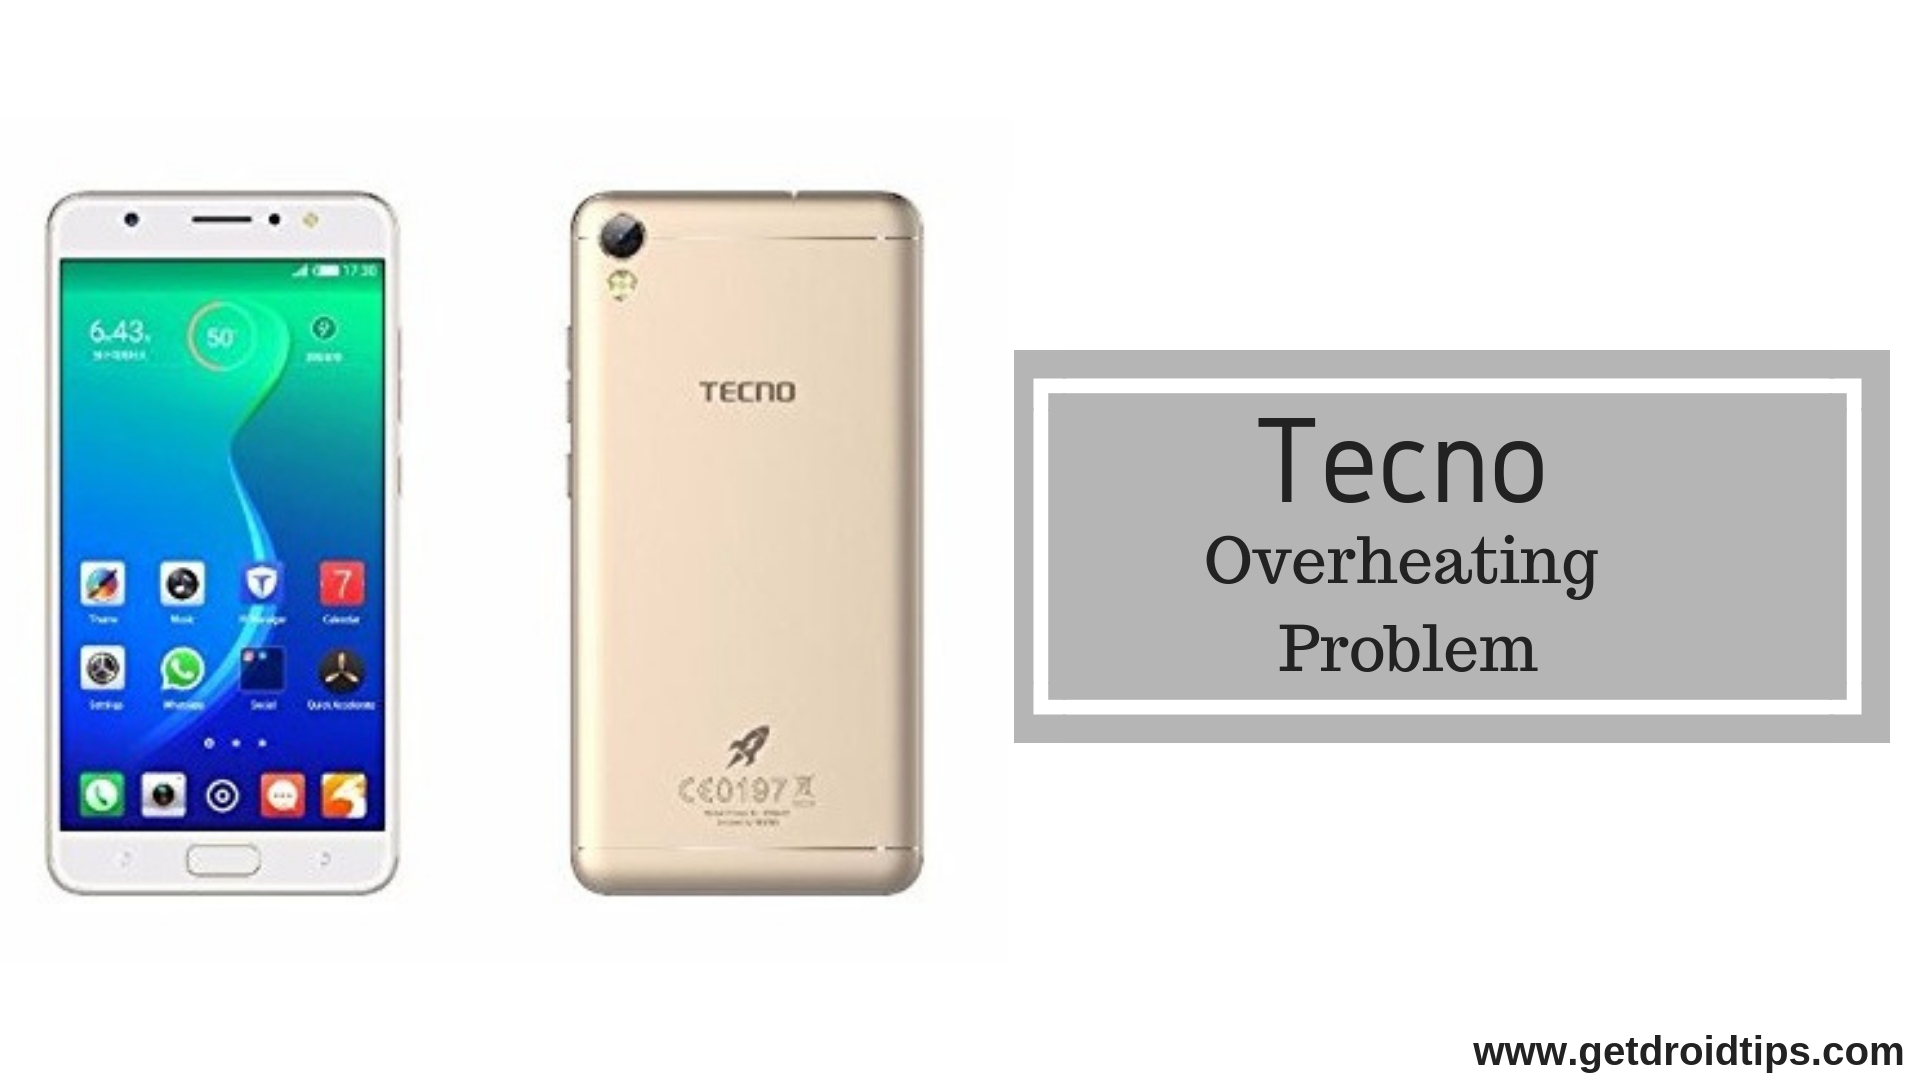 How To Fix Tecno Overheating Problem - Troubleshooting Fix & Tips